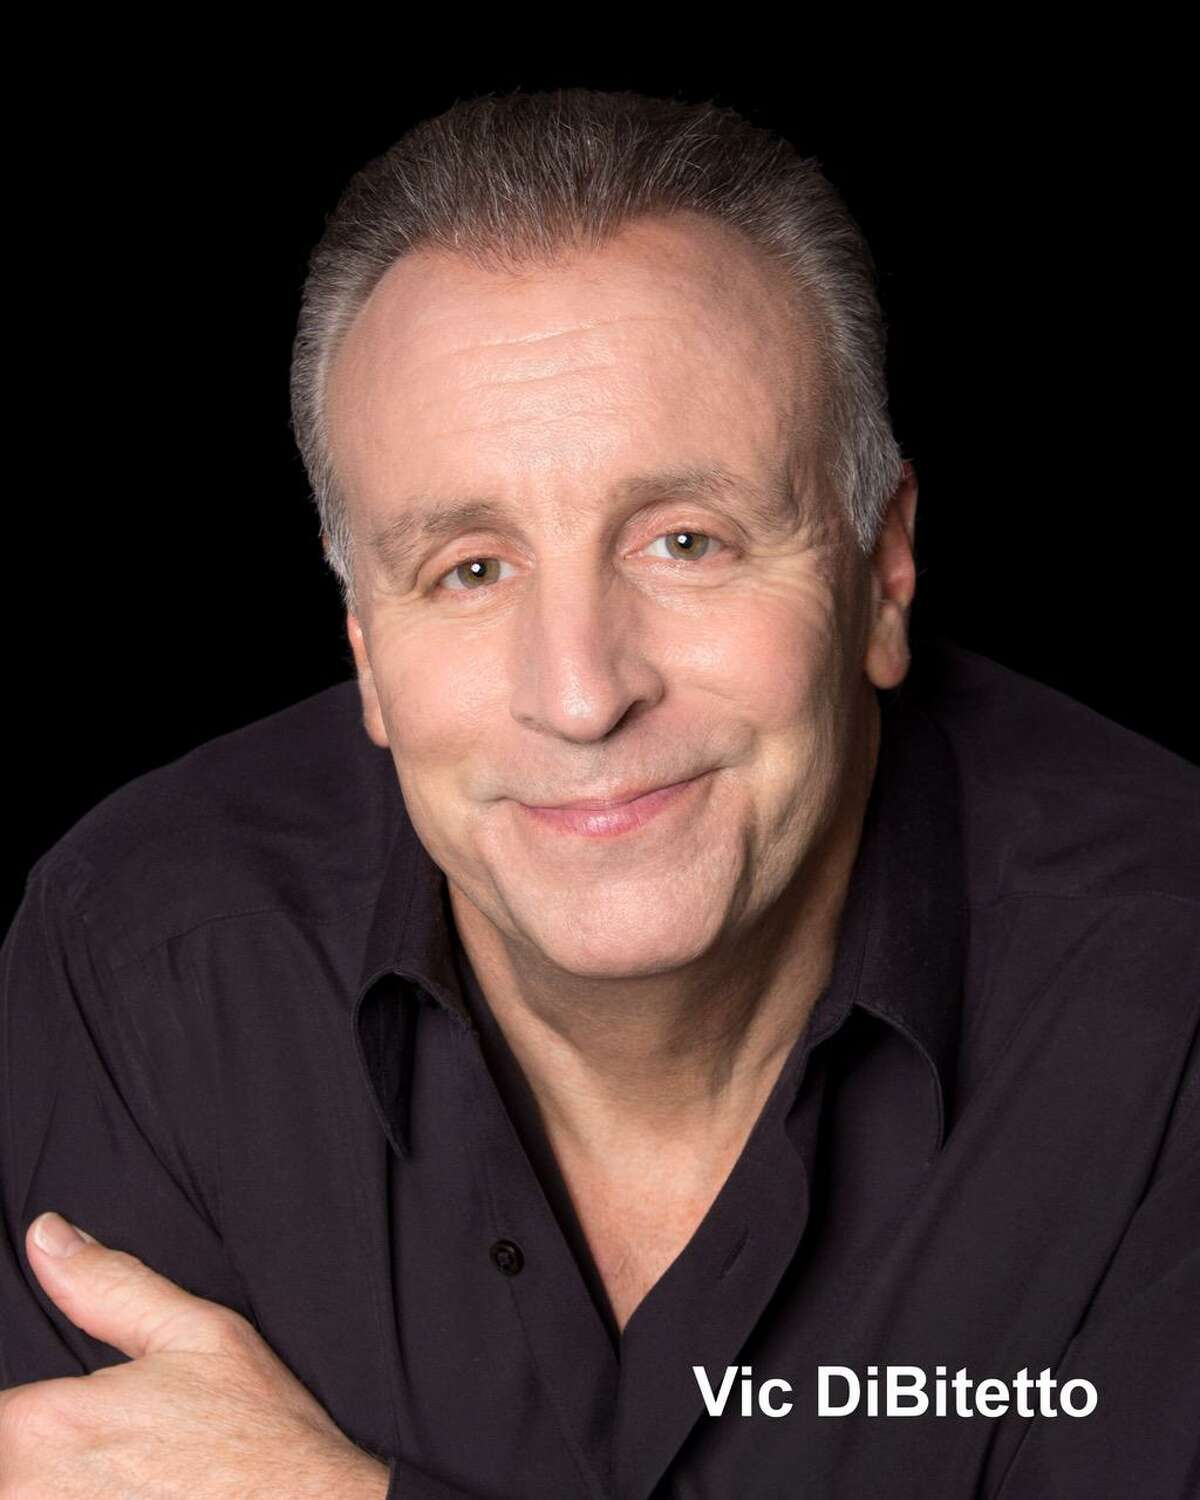 Vic DiBitetto will perform at the Ridgefield Playhouse on Feb. 28 and 29.